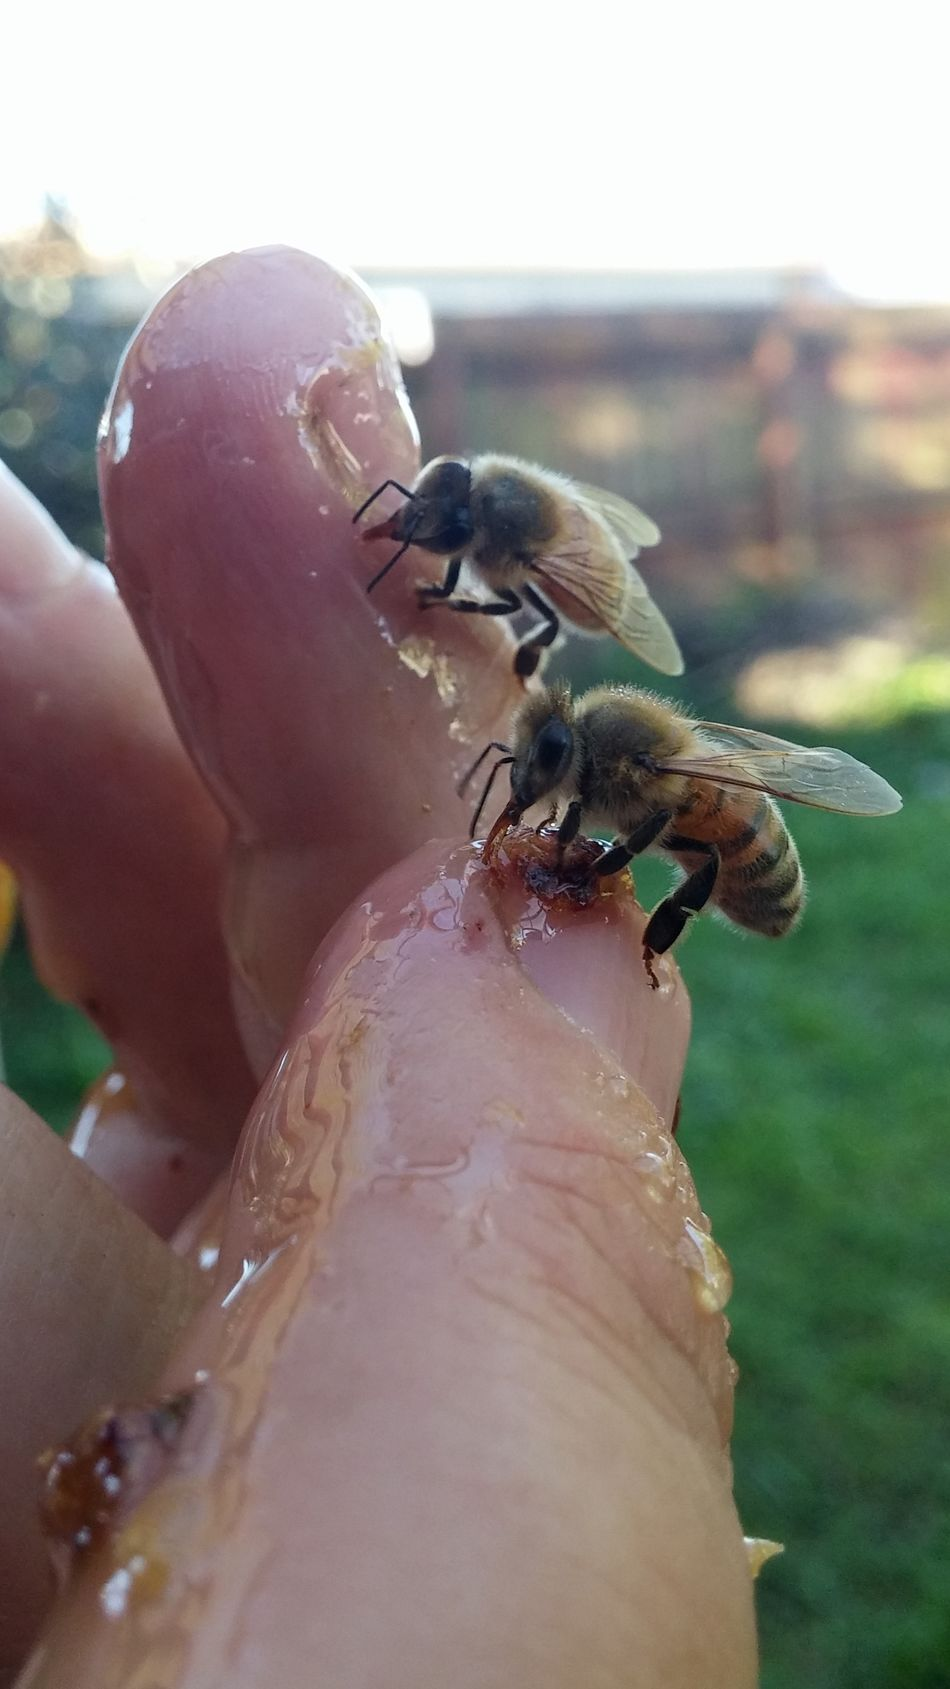 Bee watching me Insect Theme Feeding  Food Perching Yves Bees🐝 Hallo Hanging Women Who Inspire You I See You Summer NZ Style Outdoors Bee Nature Day Close-up Insect